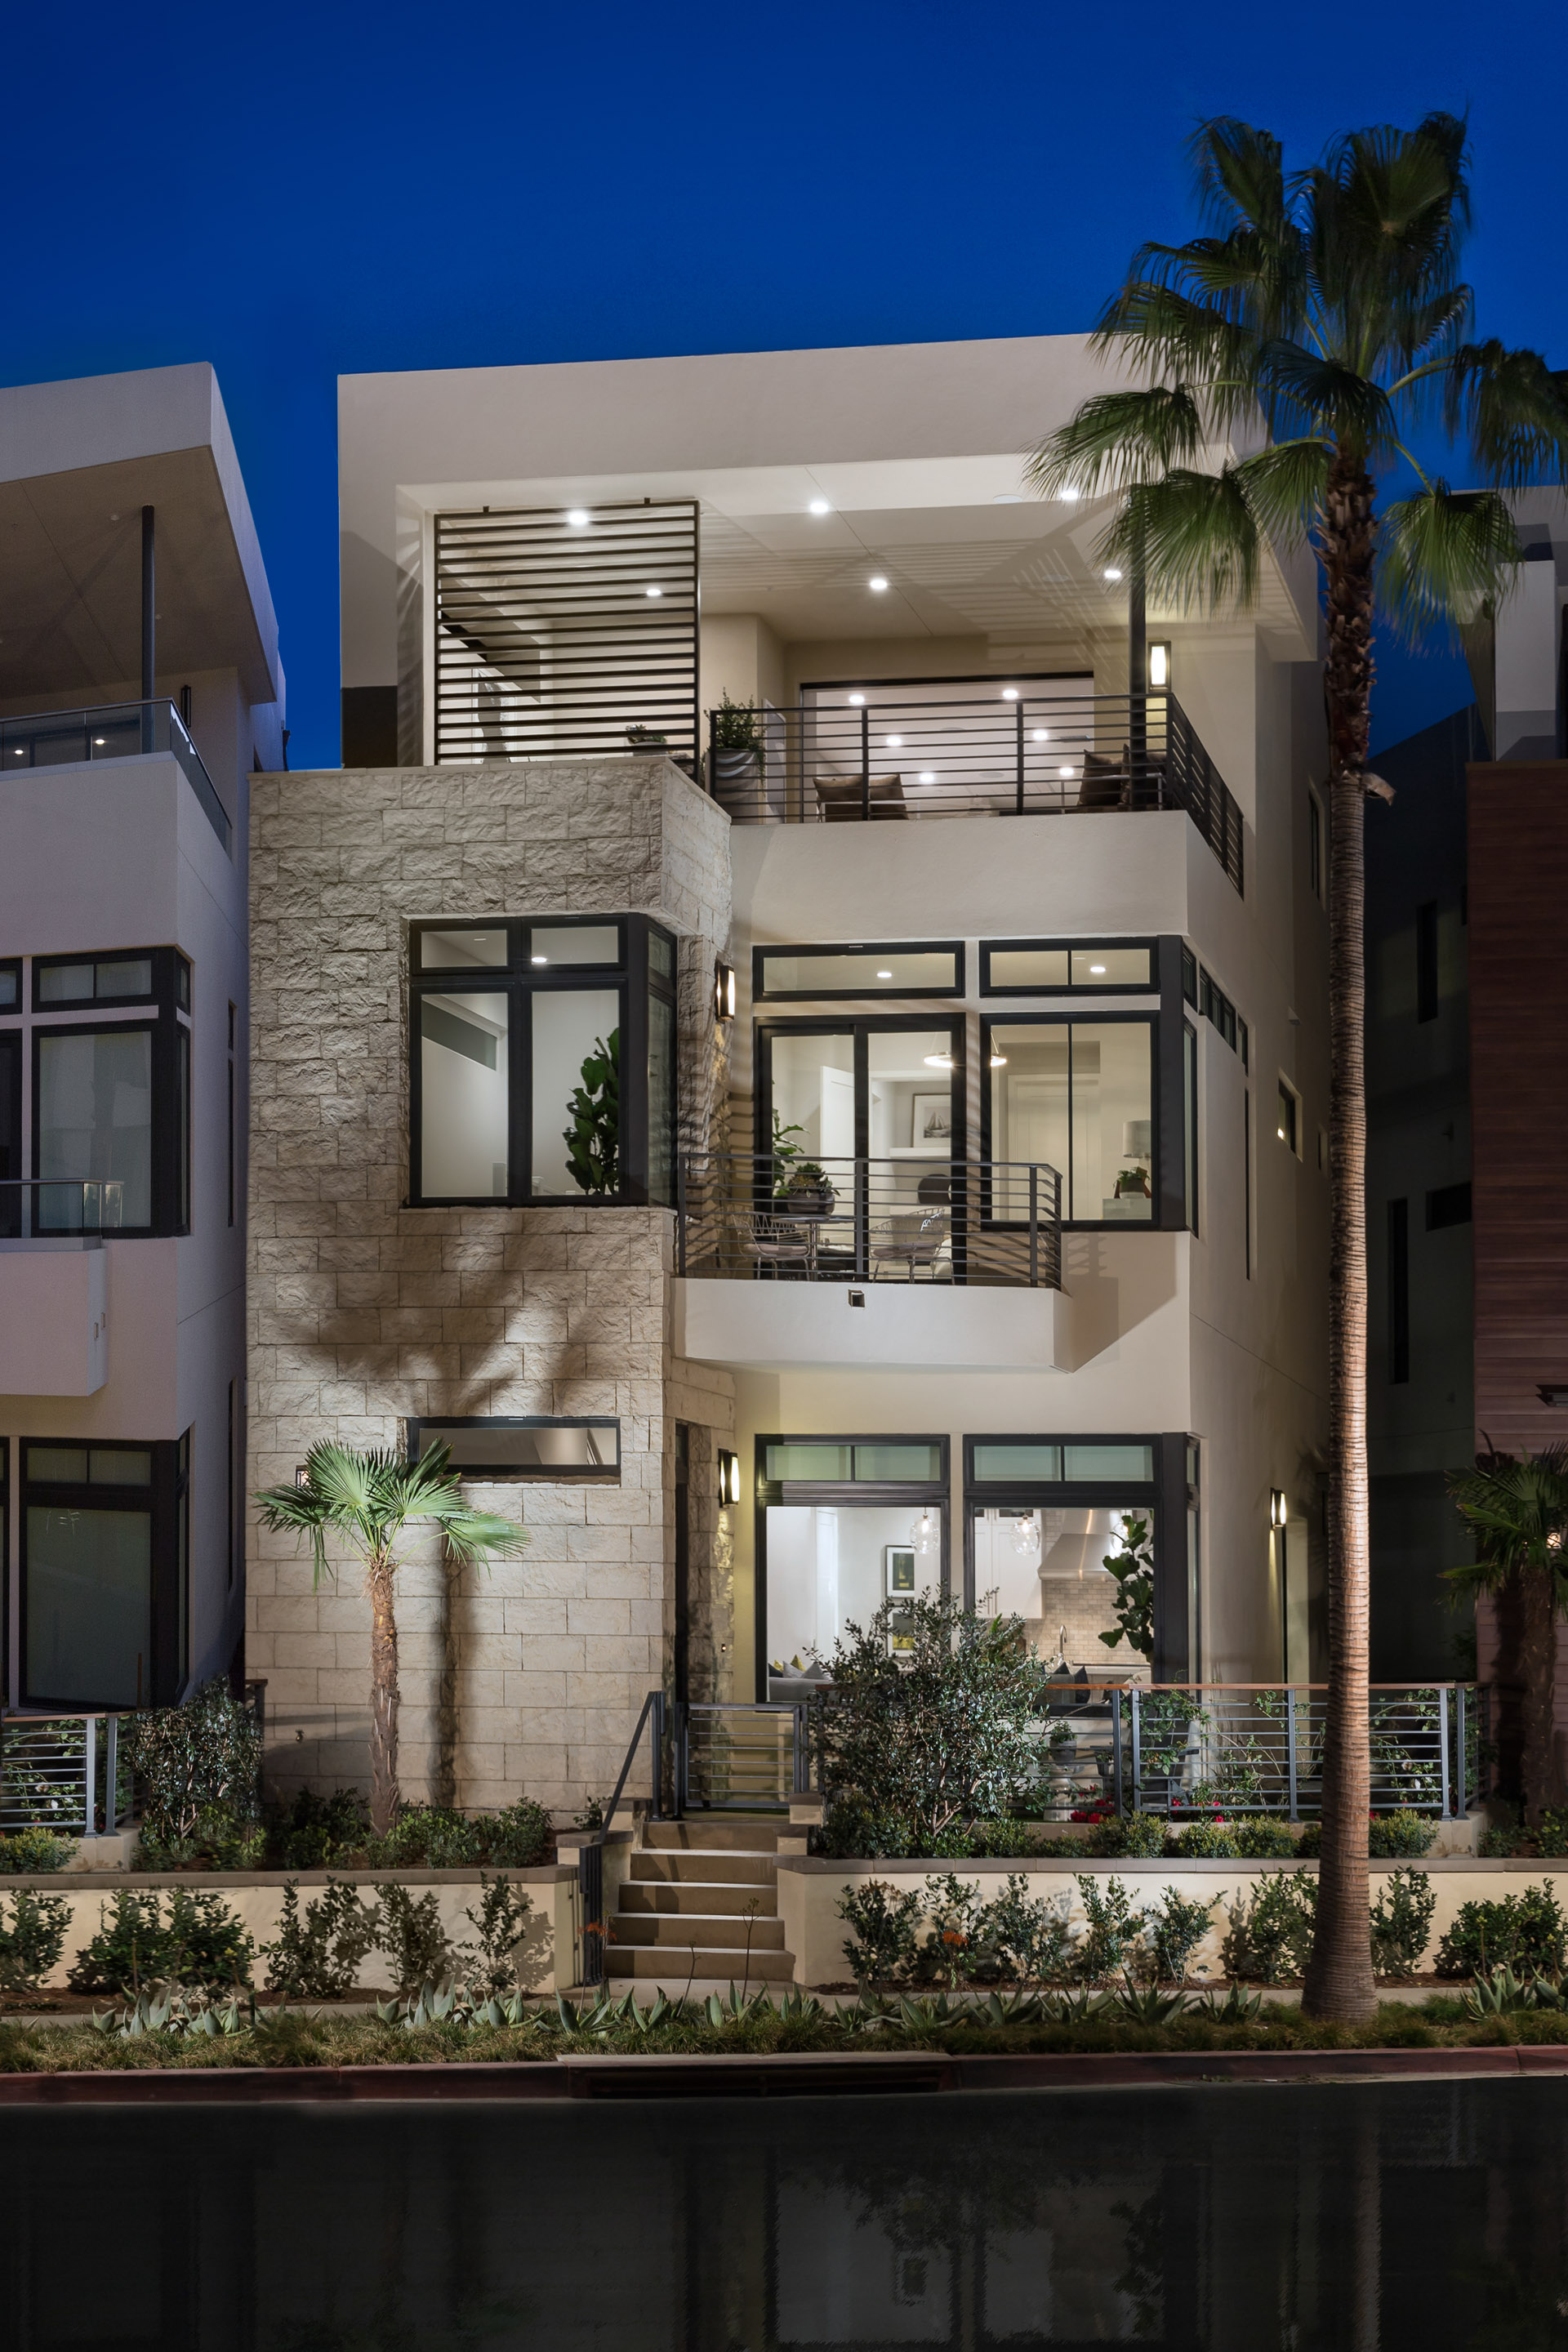 encore at playa vista - exterior shot